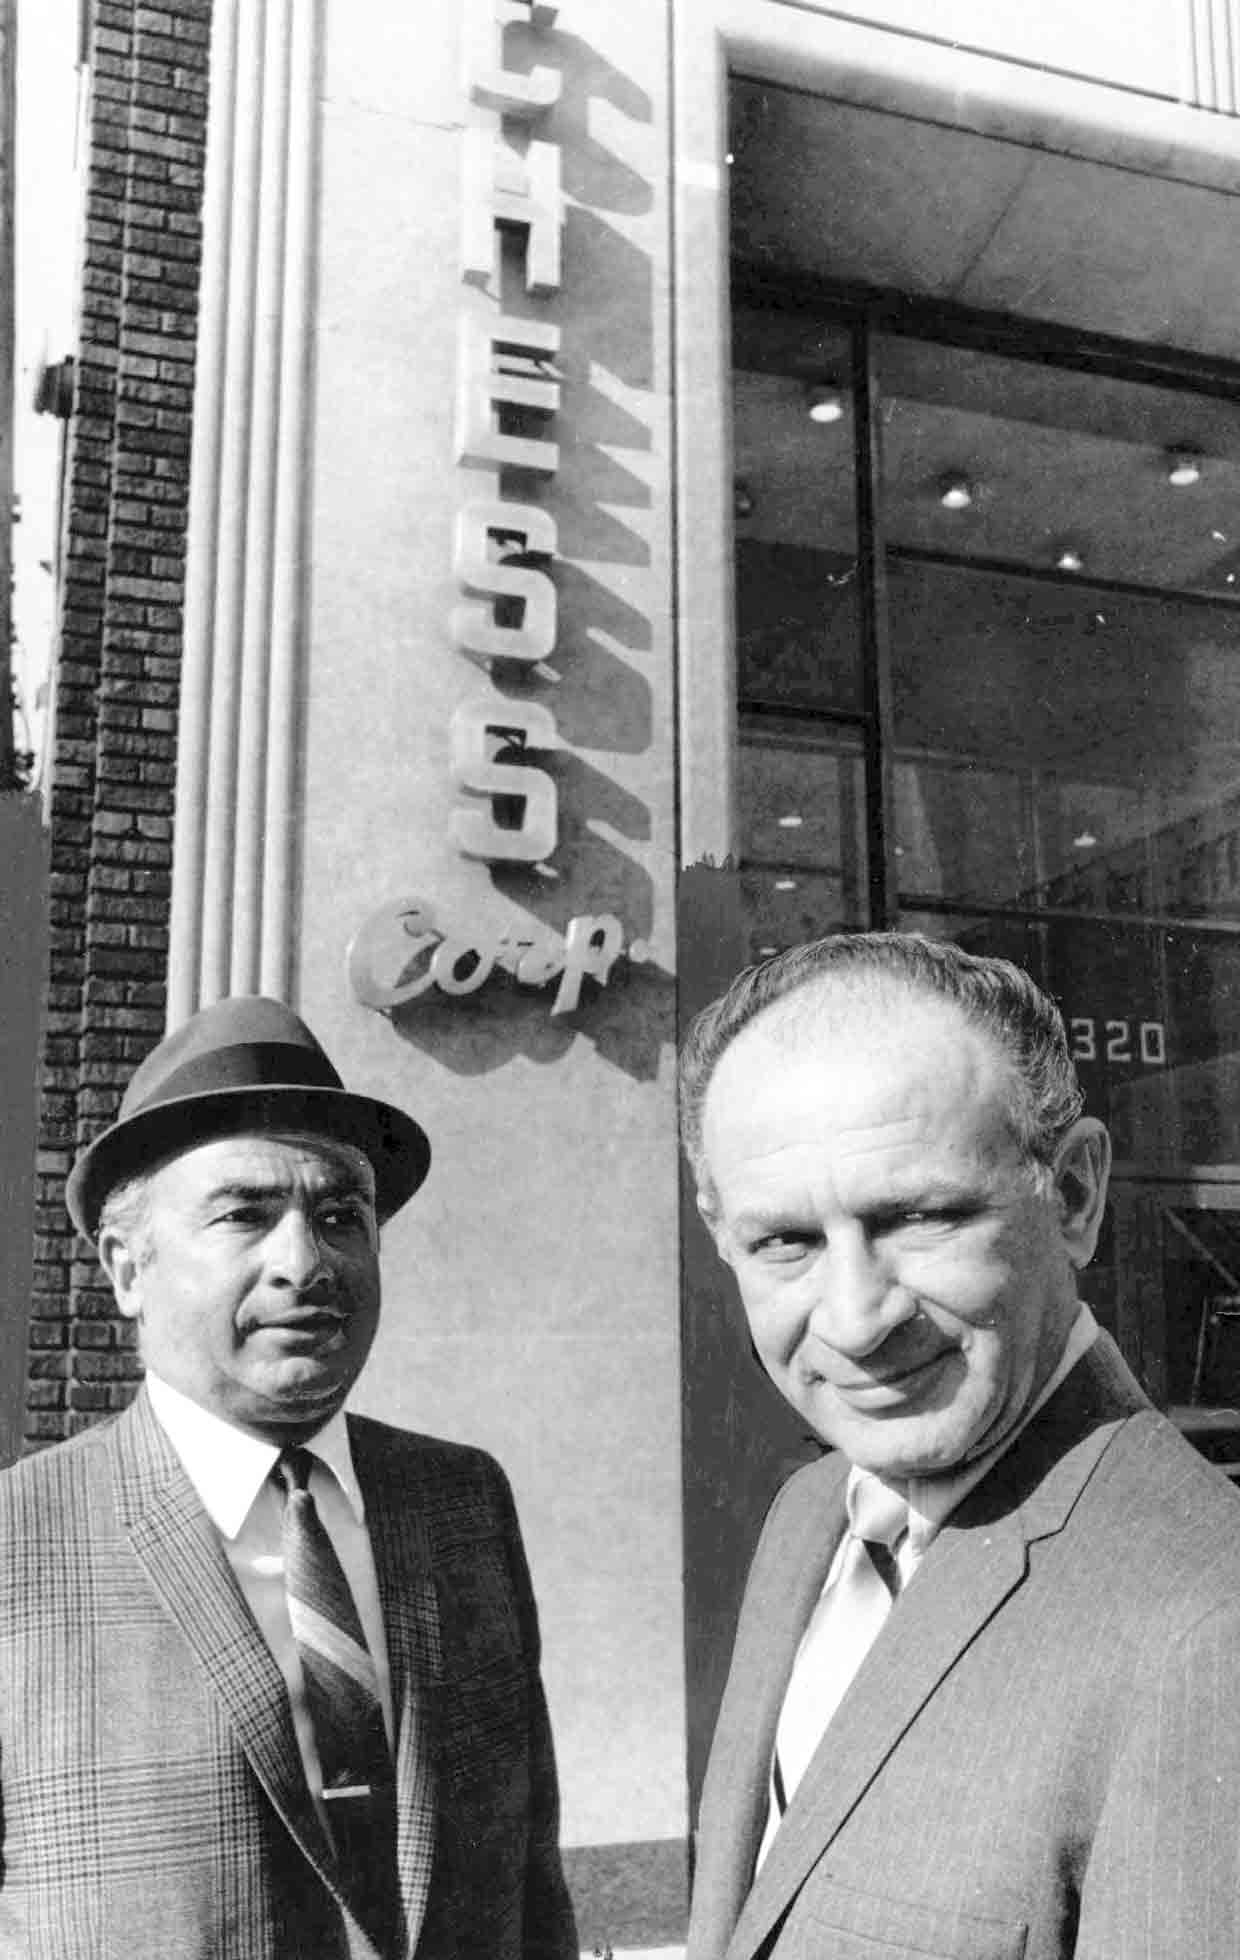 Brothers Phil (left) and Leonard Chess, owners of Berry's longtime label Chess, outside their Chicago headquarters.